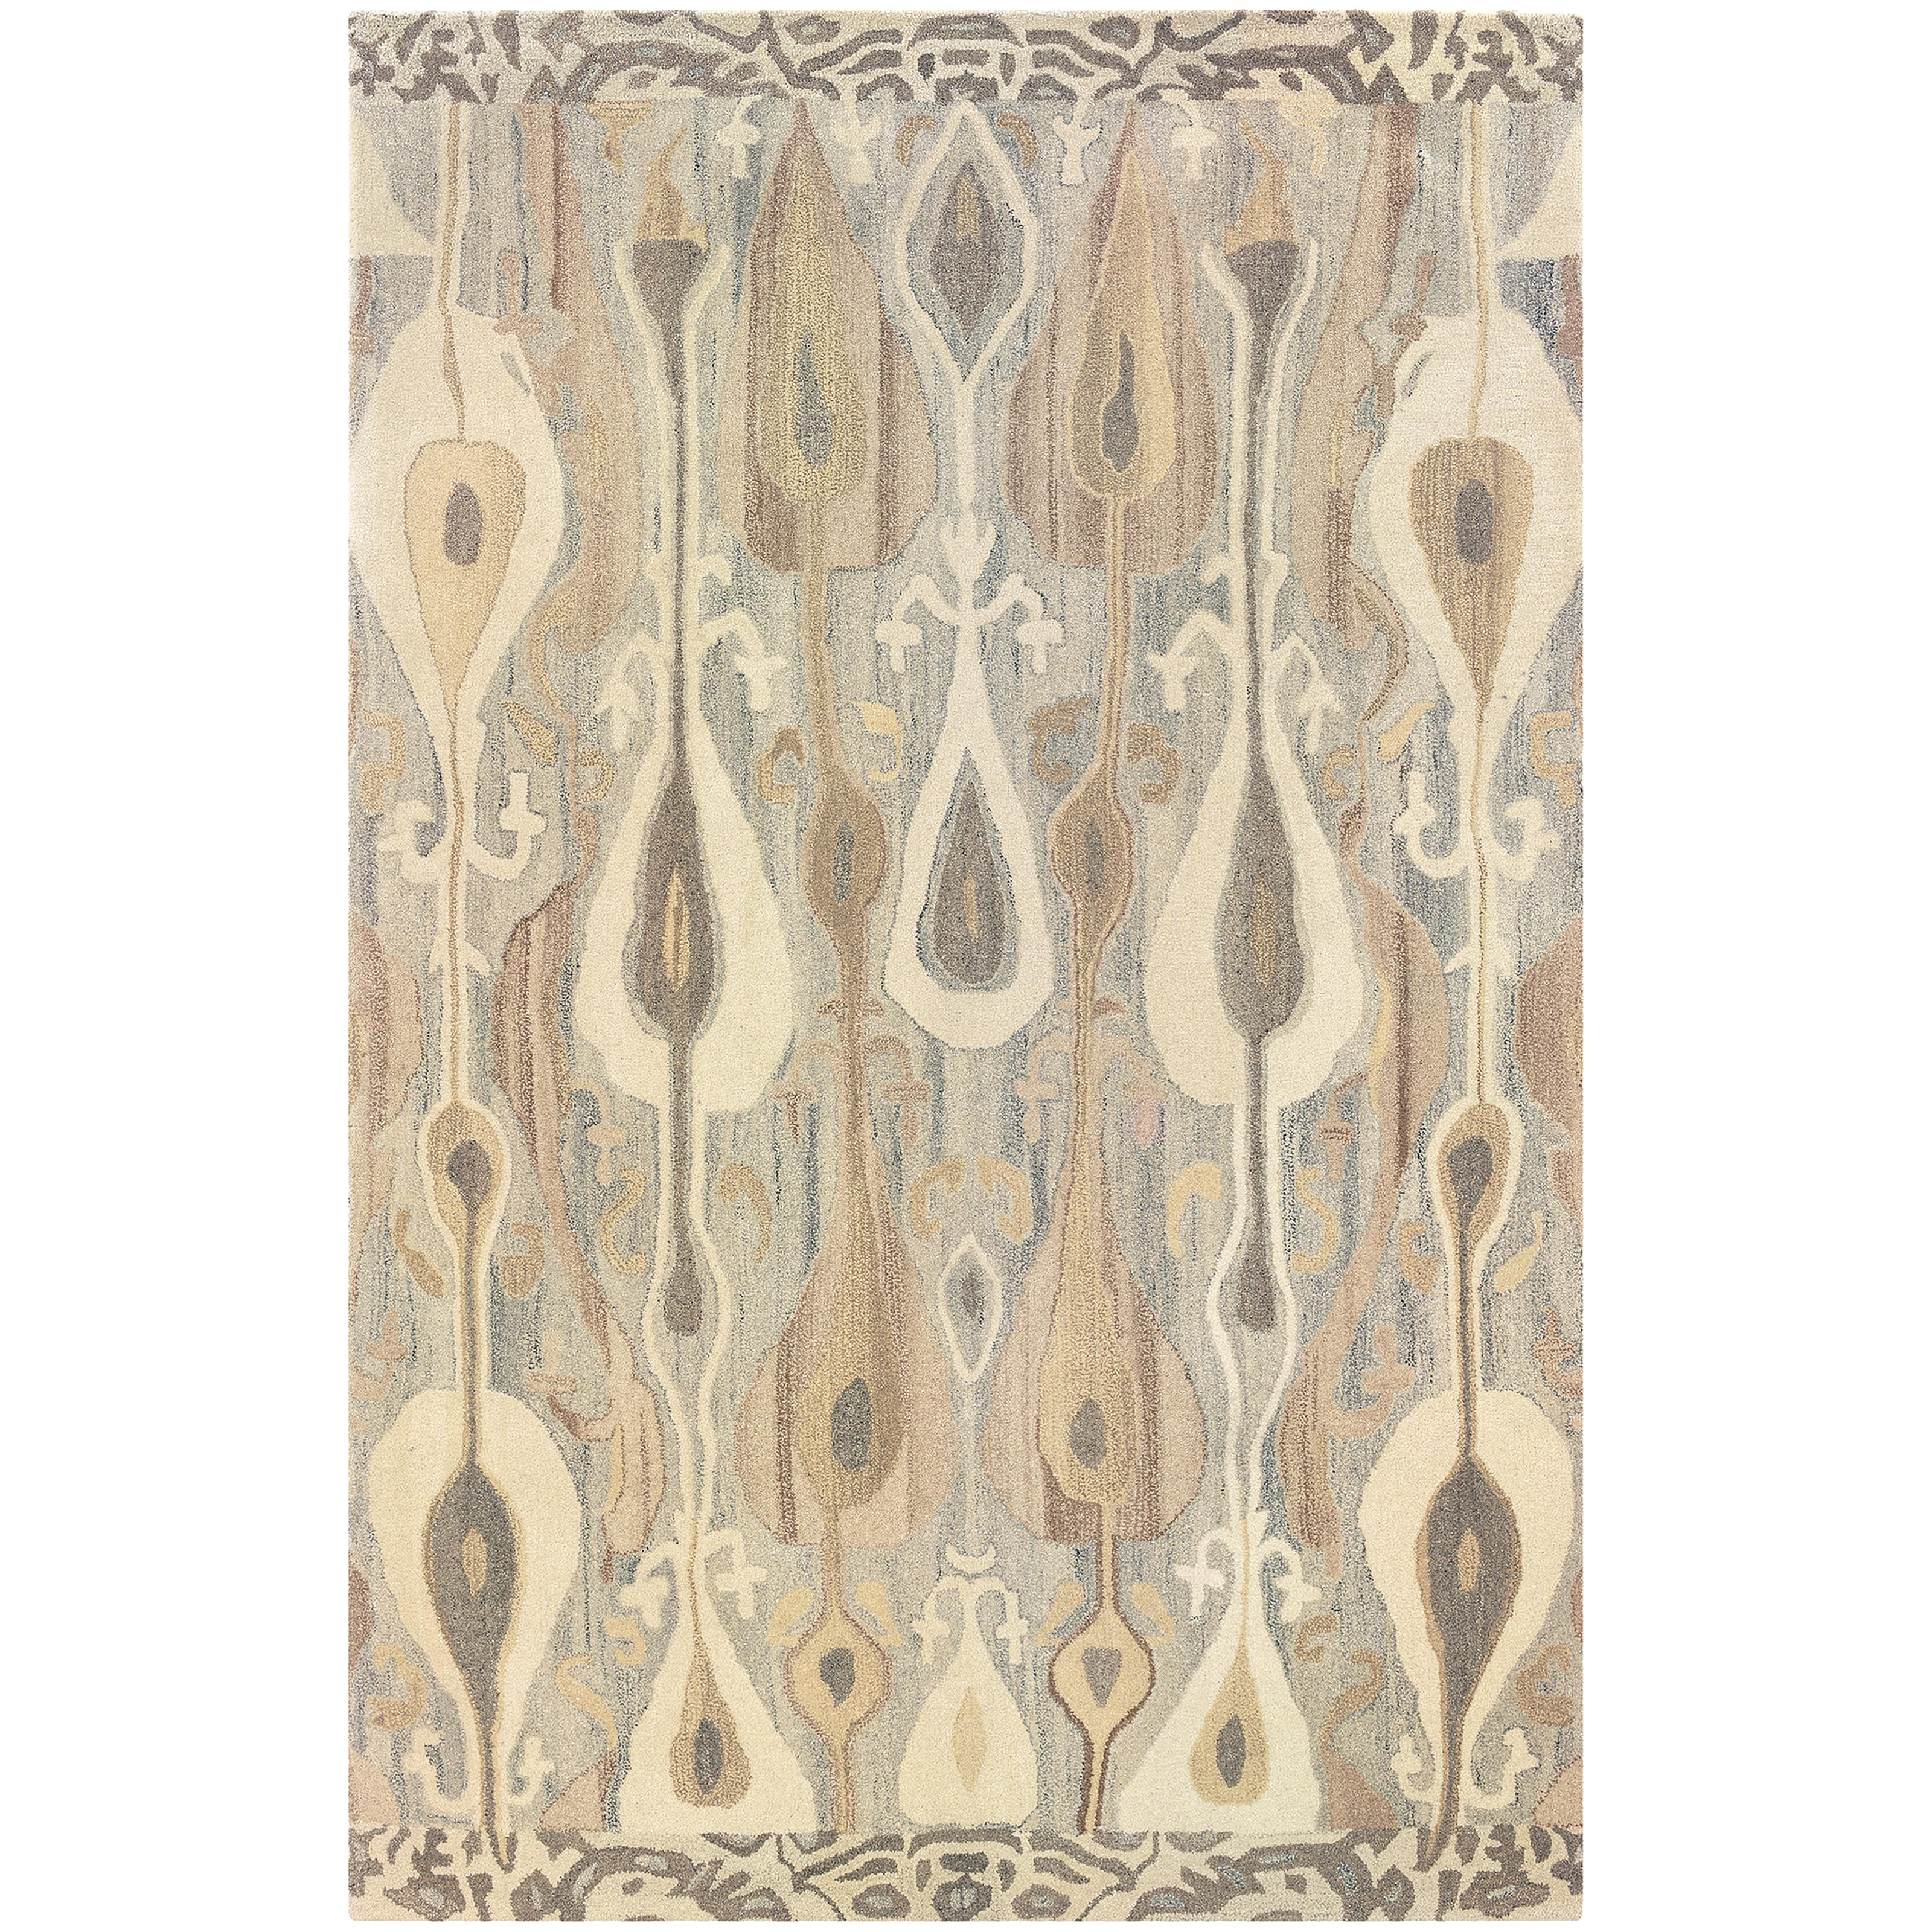 Anastasia 5' x 8' Rug by Oriental Weavers at HomeWorld Furniture